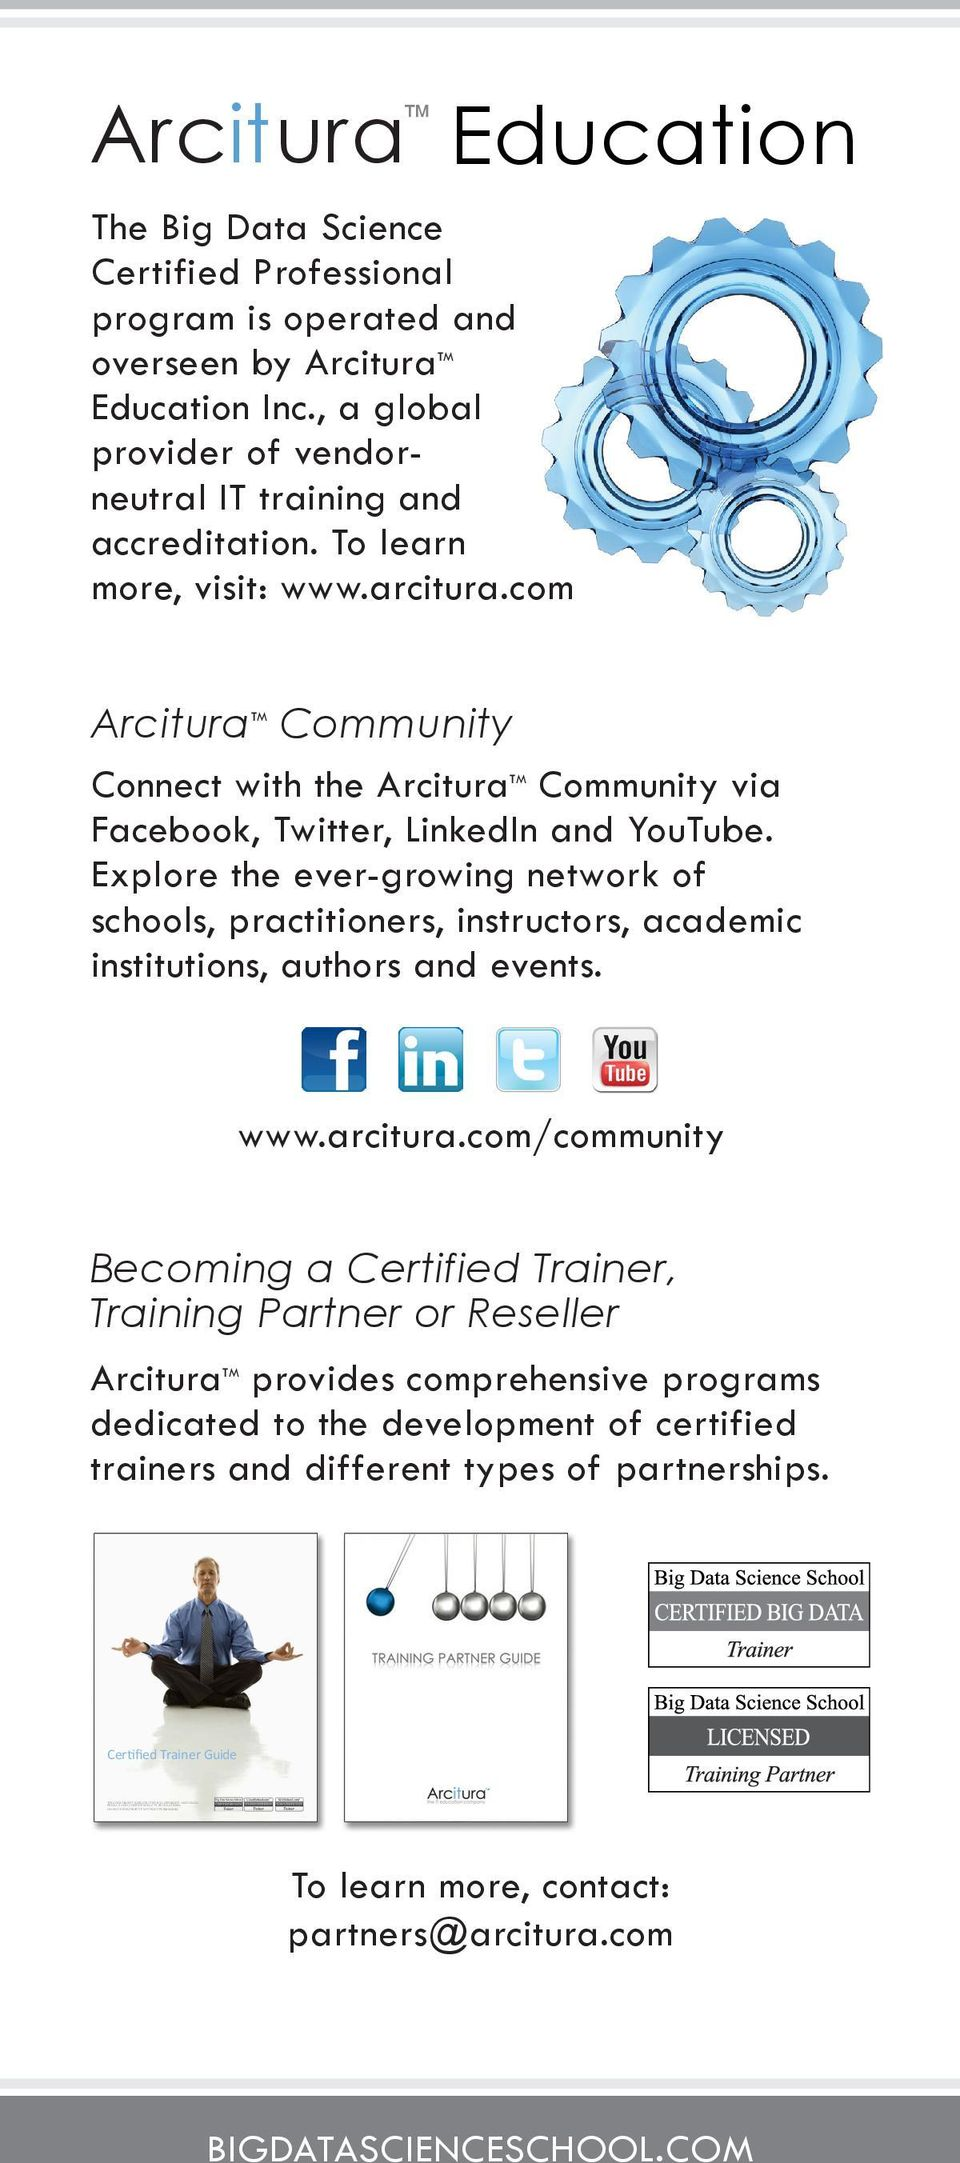 , a global provider of vendorneutral IT training and accreditation. To learn more, visit: www.arcitura.